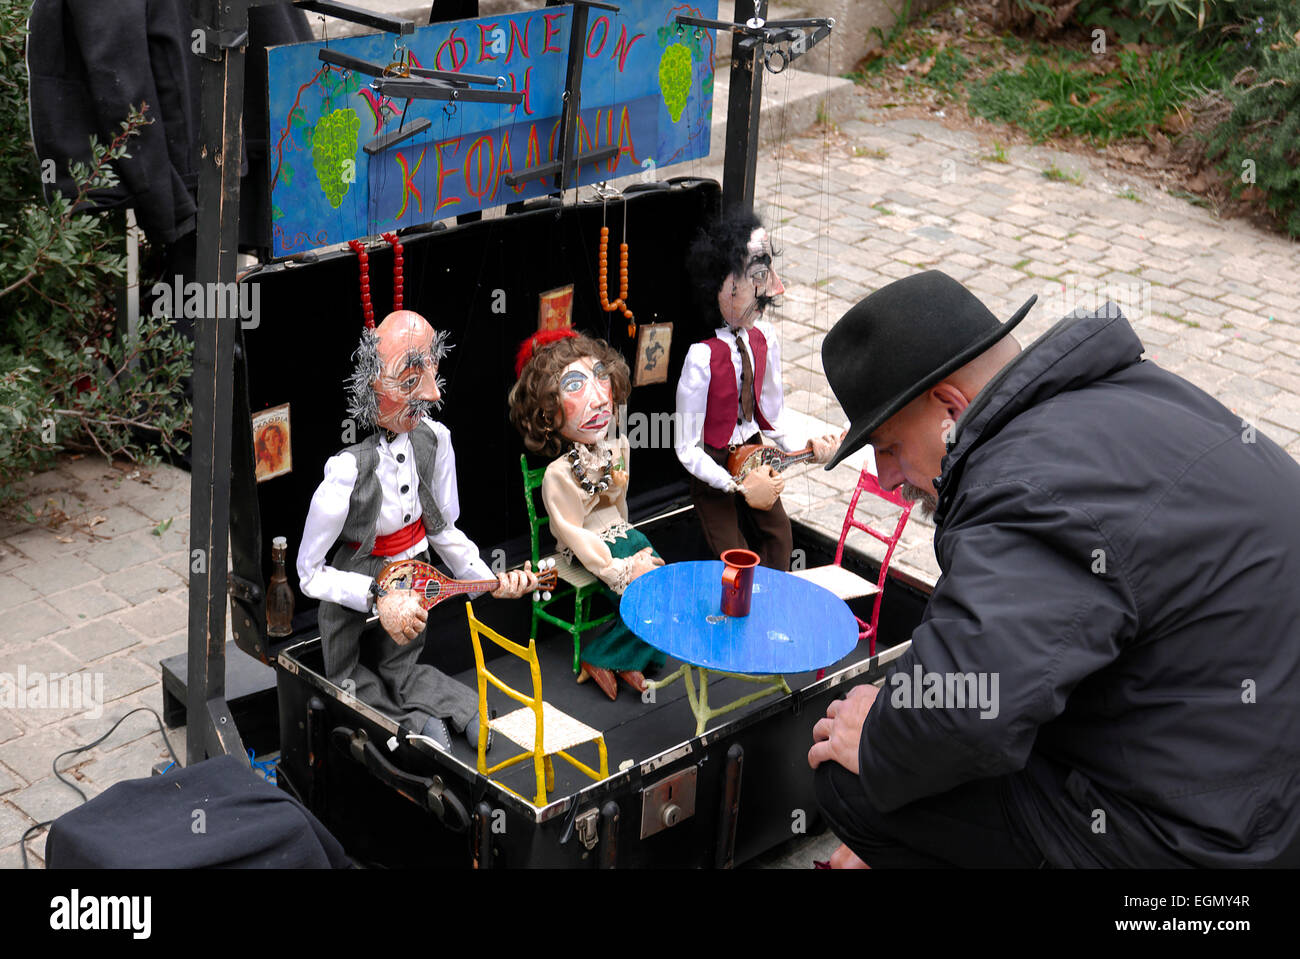 greece attica athens plaka a street performer setting up puppets - Stock Image